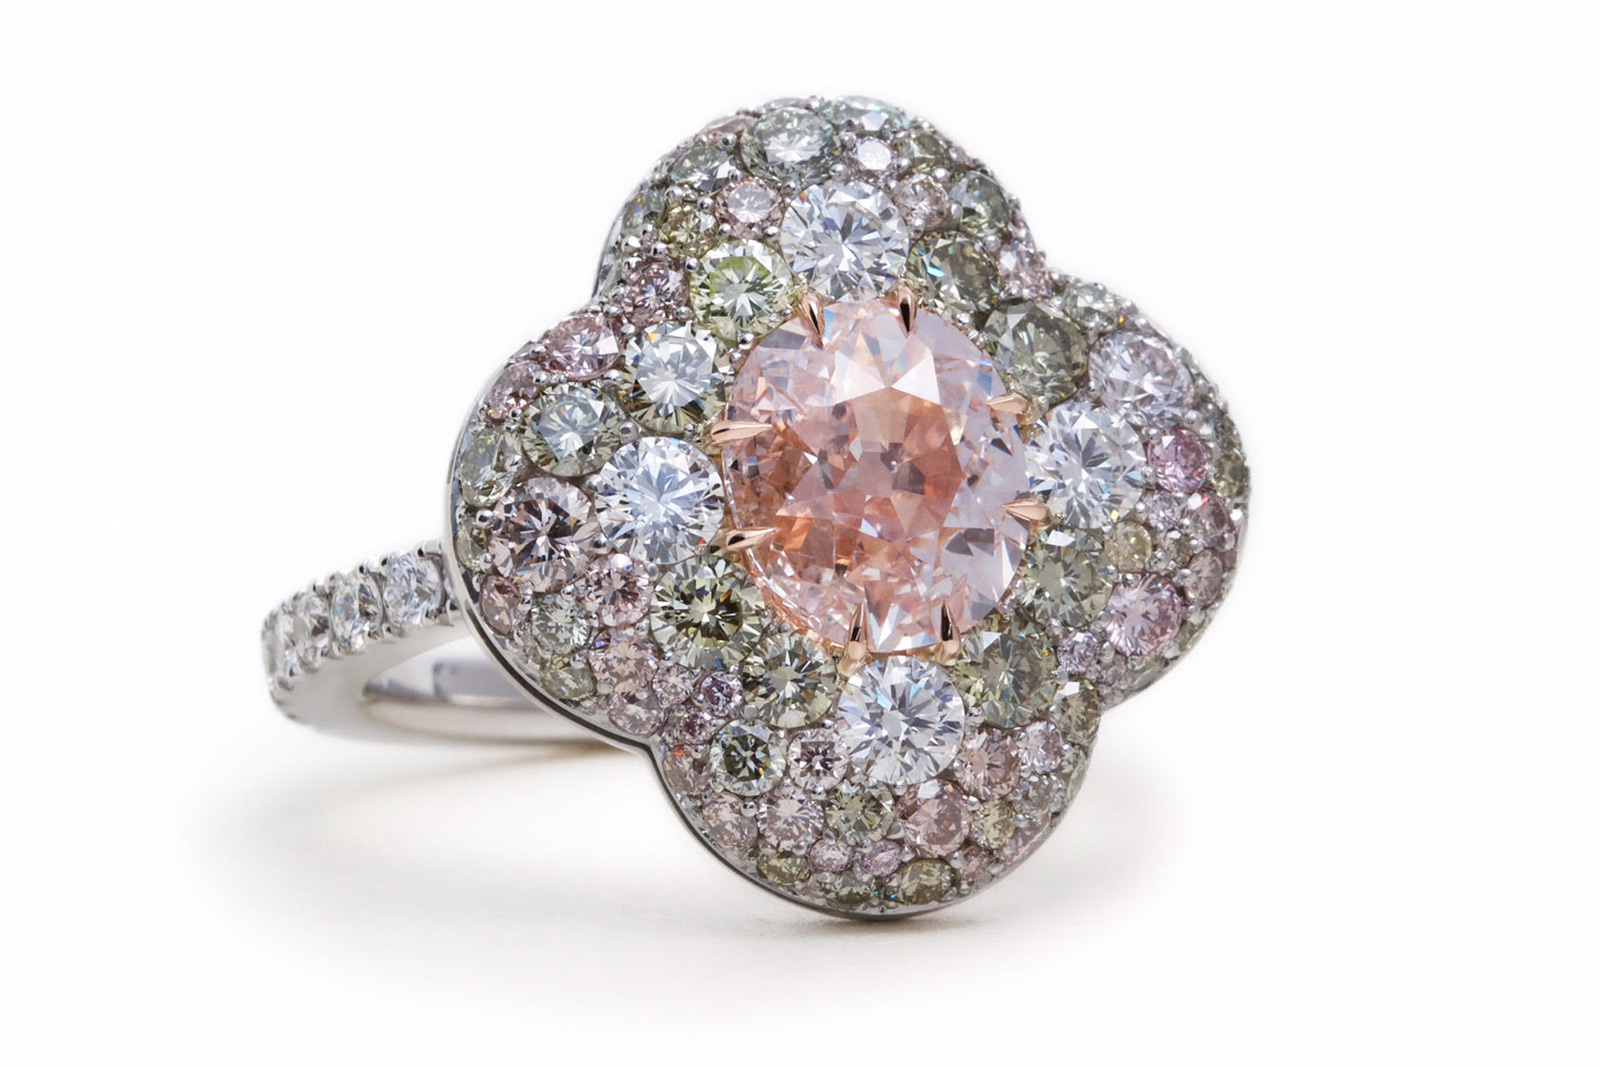 David Michael flower ring with an antique pink diamond ring, green and colourless diamonds